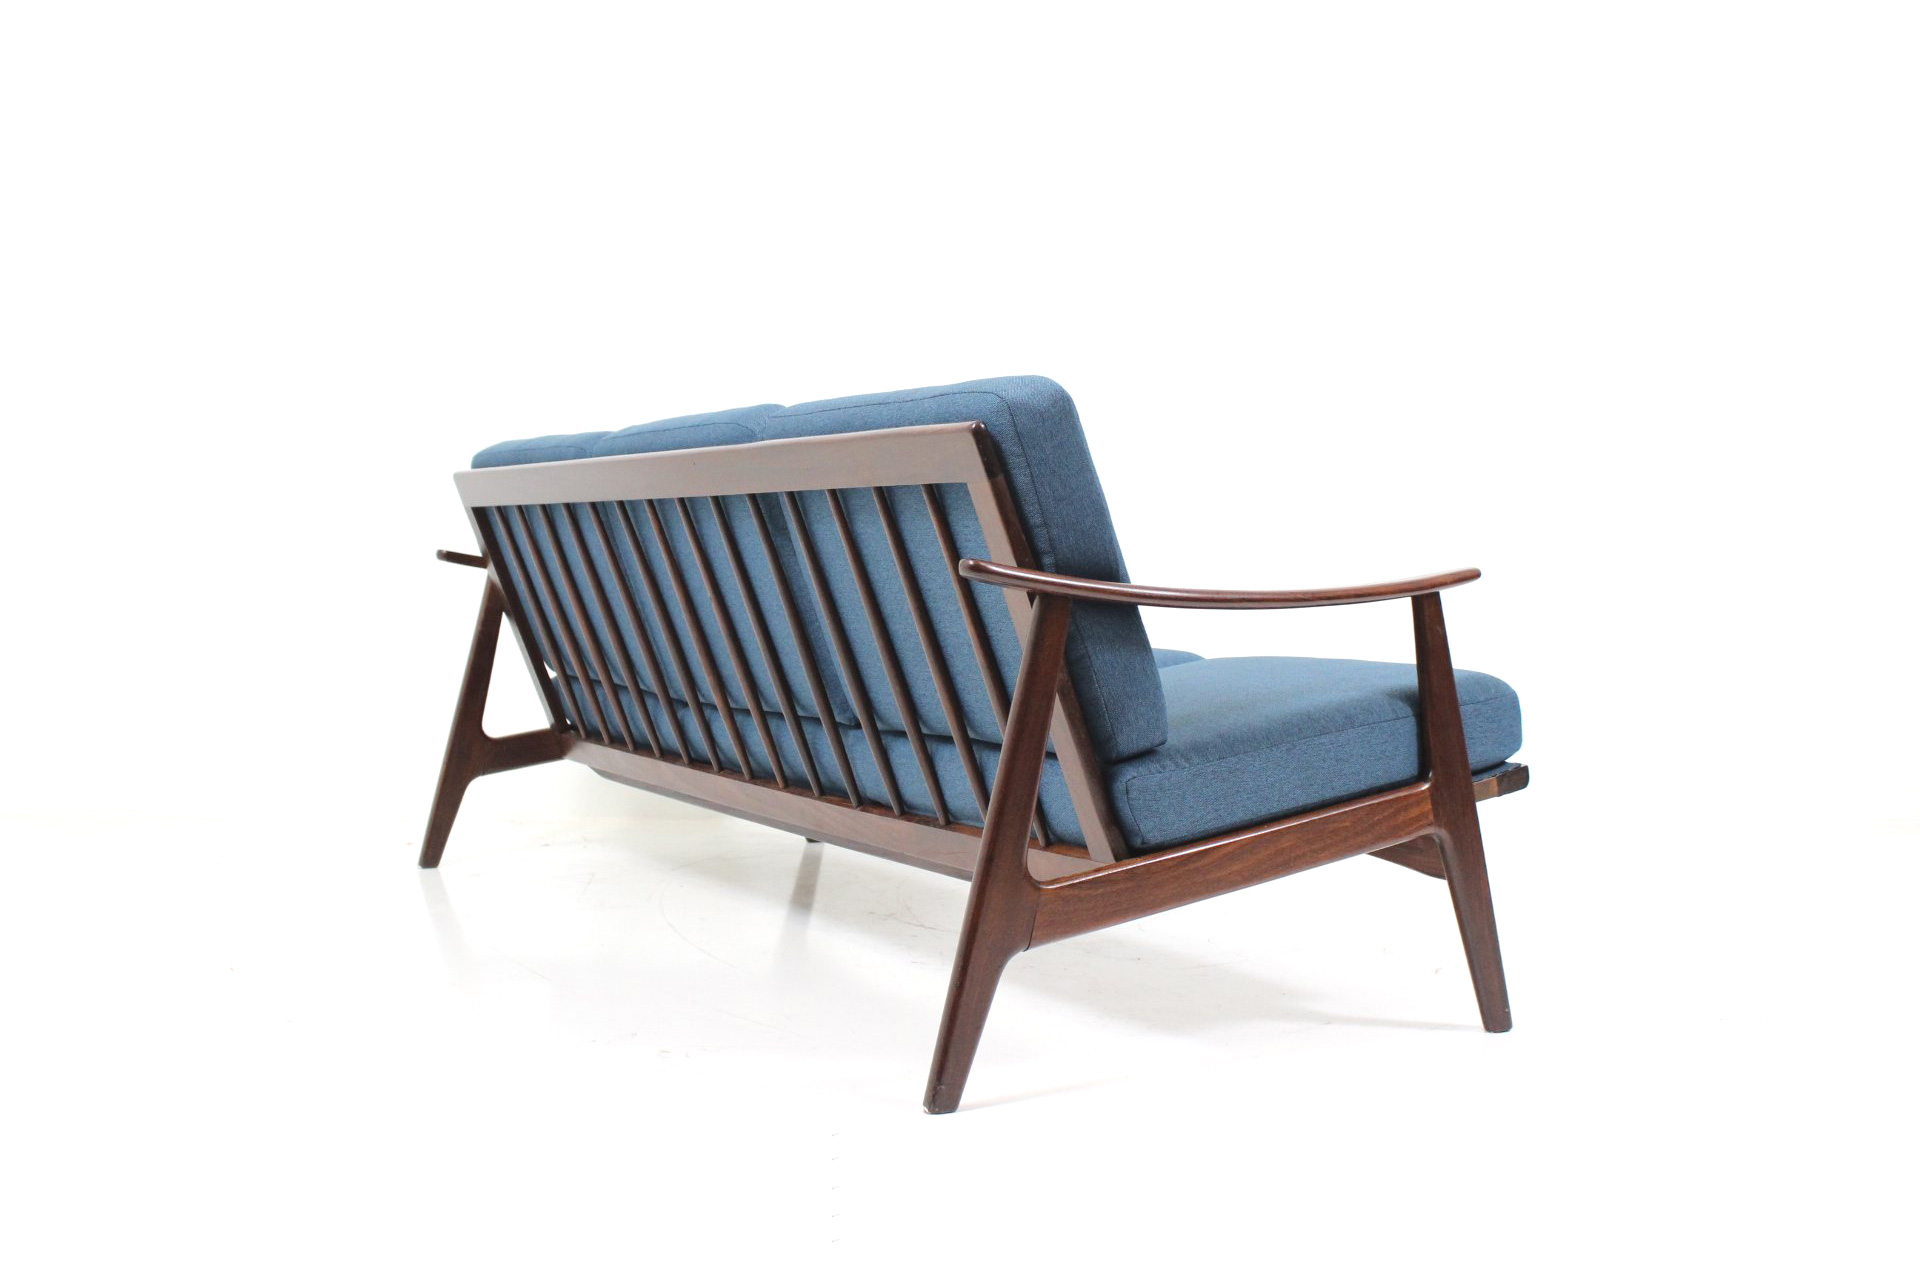 Three Seater Cushion Sofa In Teak For Knoll Antimott Davint Design